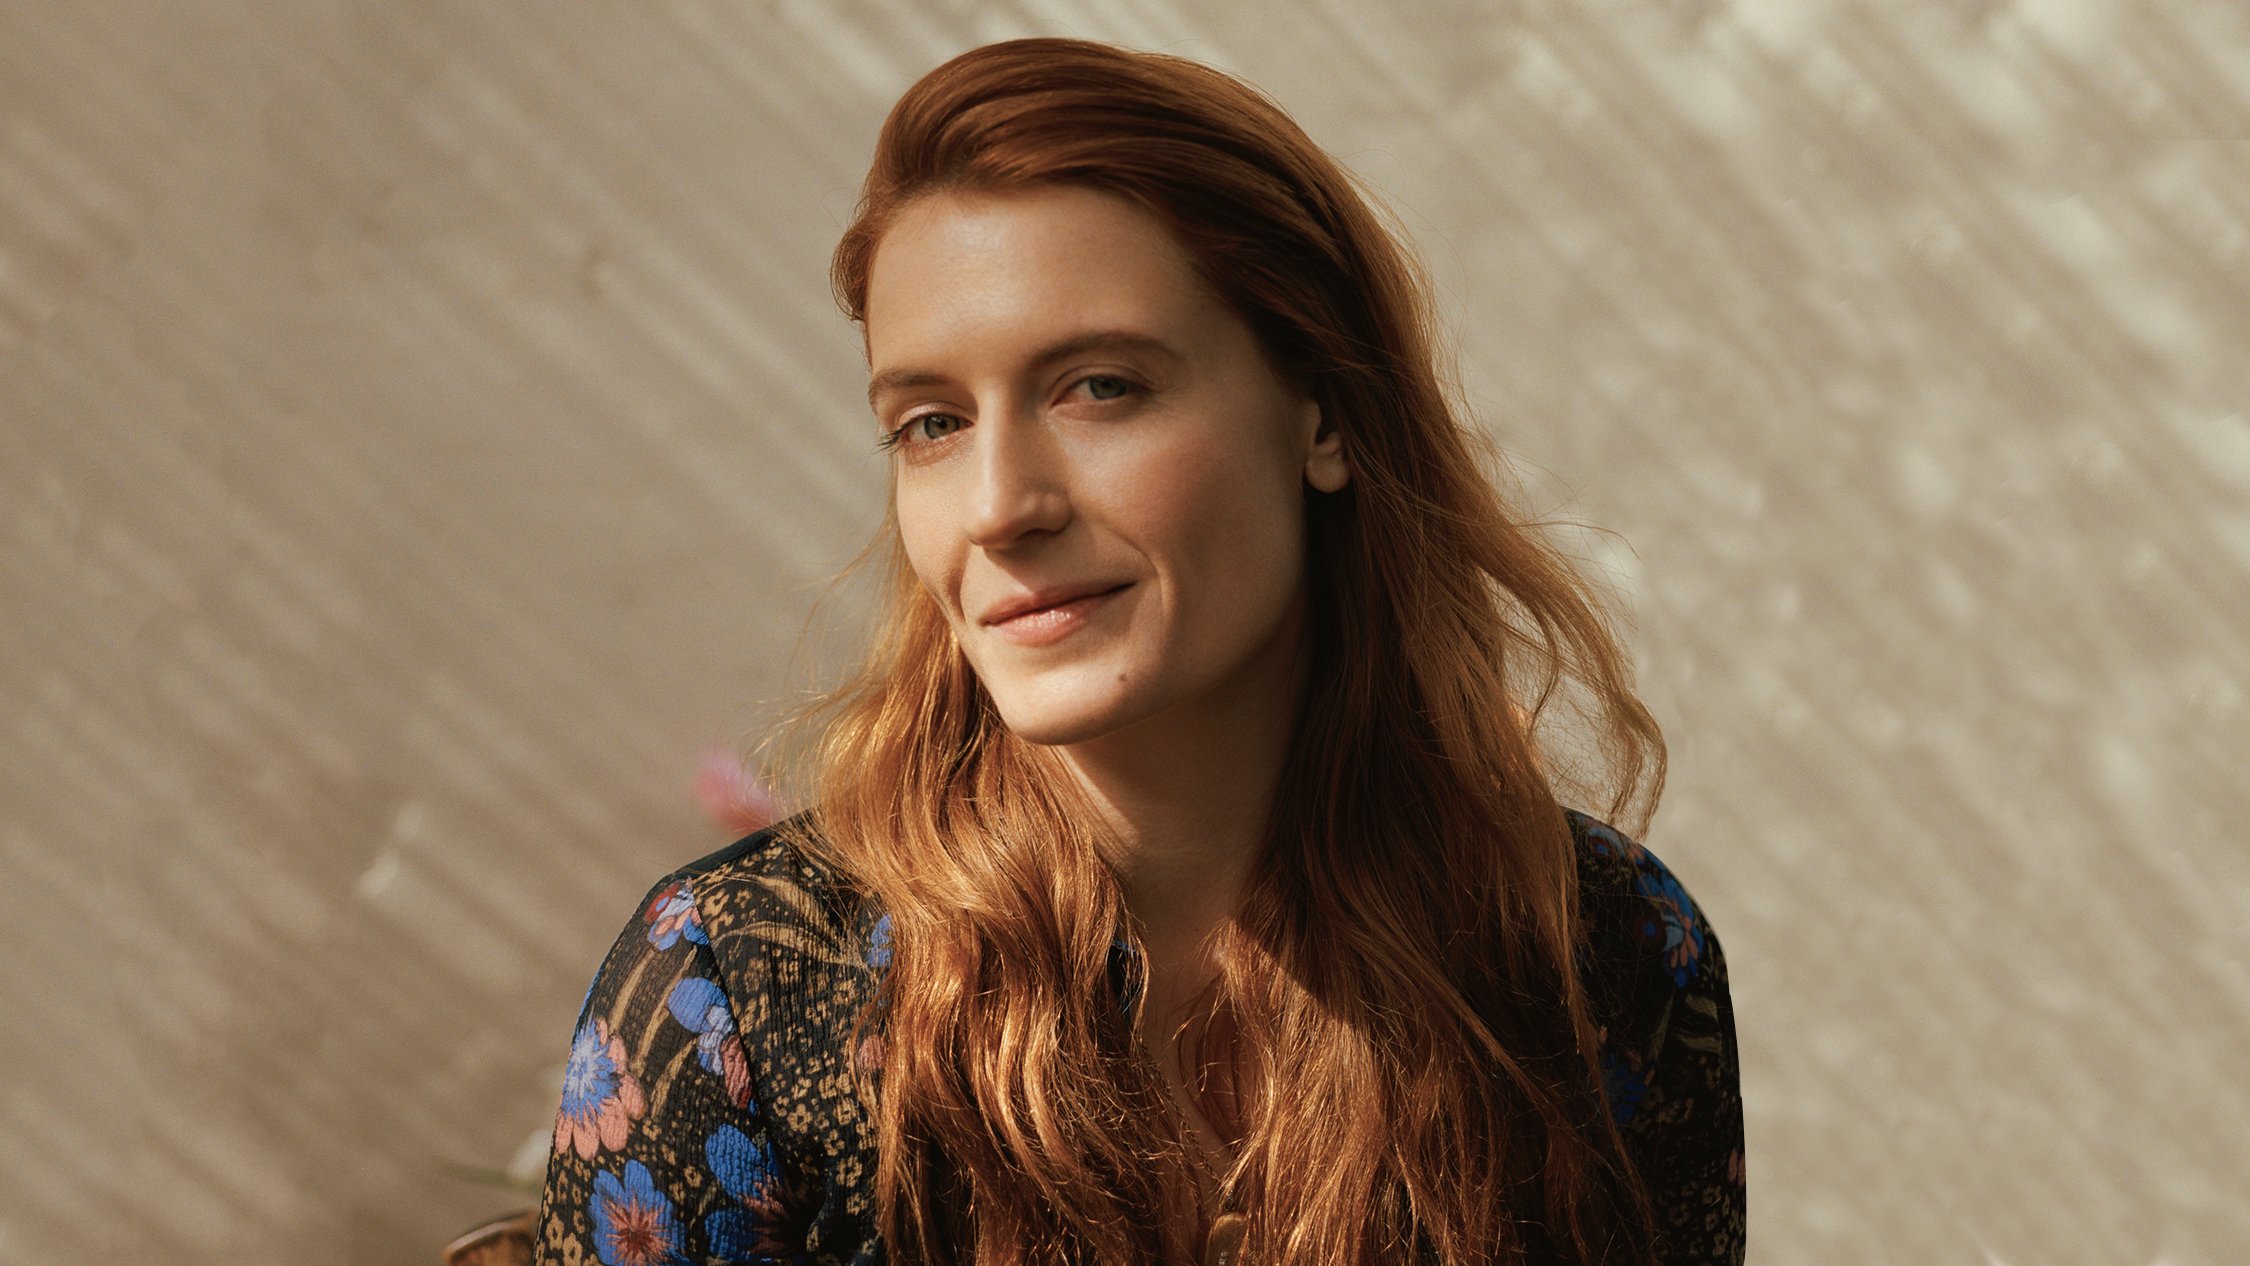 Florence and the Machine are coming to Sydney in January 2019